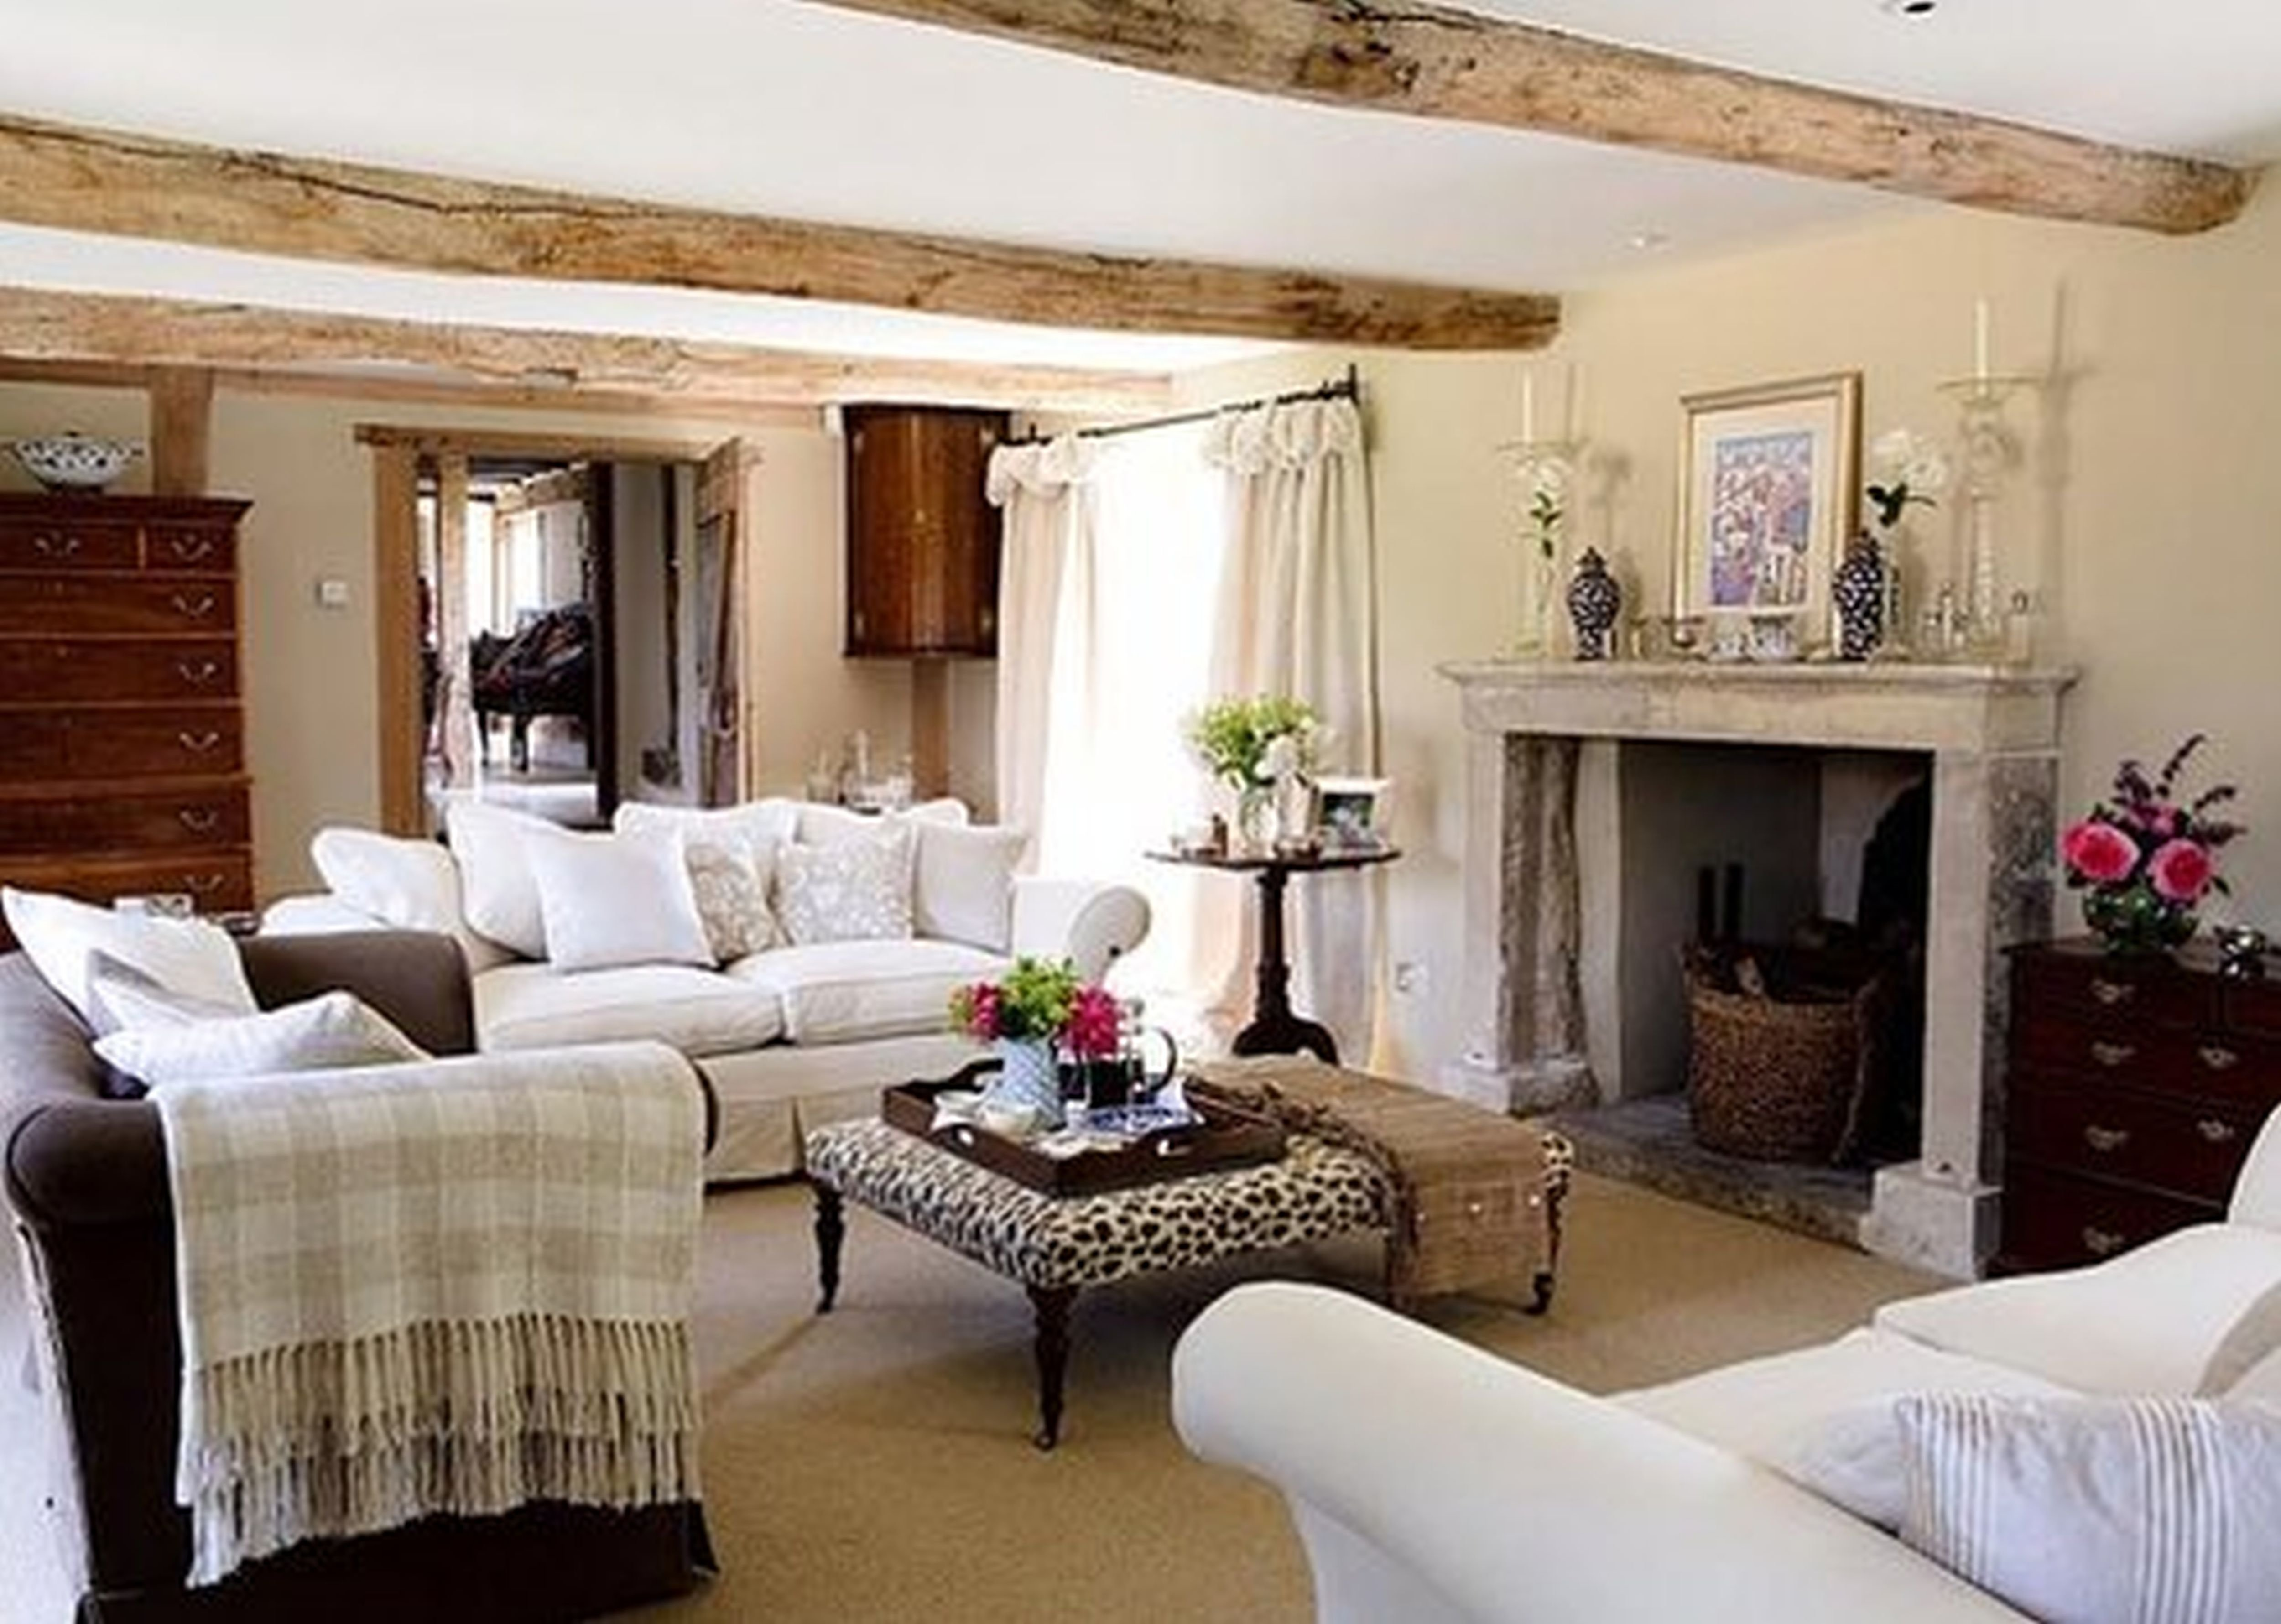 10 Beautiful Country Style Living Room Ideas living room country decorating ideas cottage rooms rustic fresh 2021